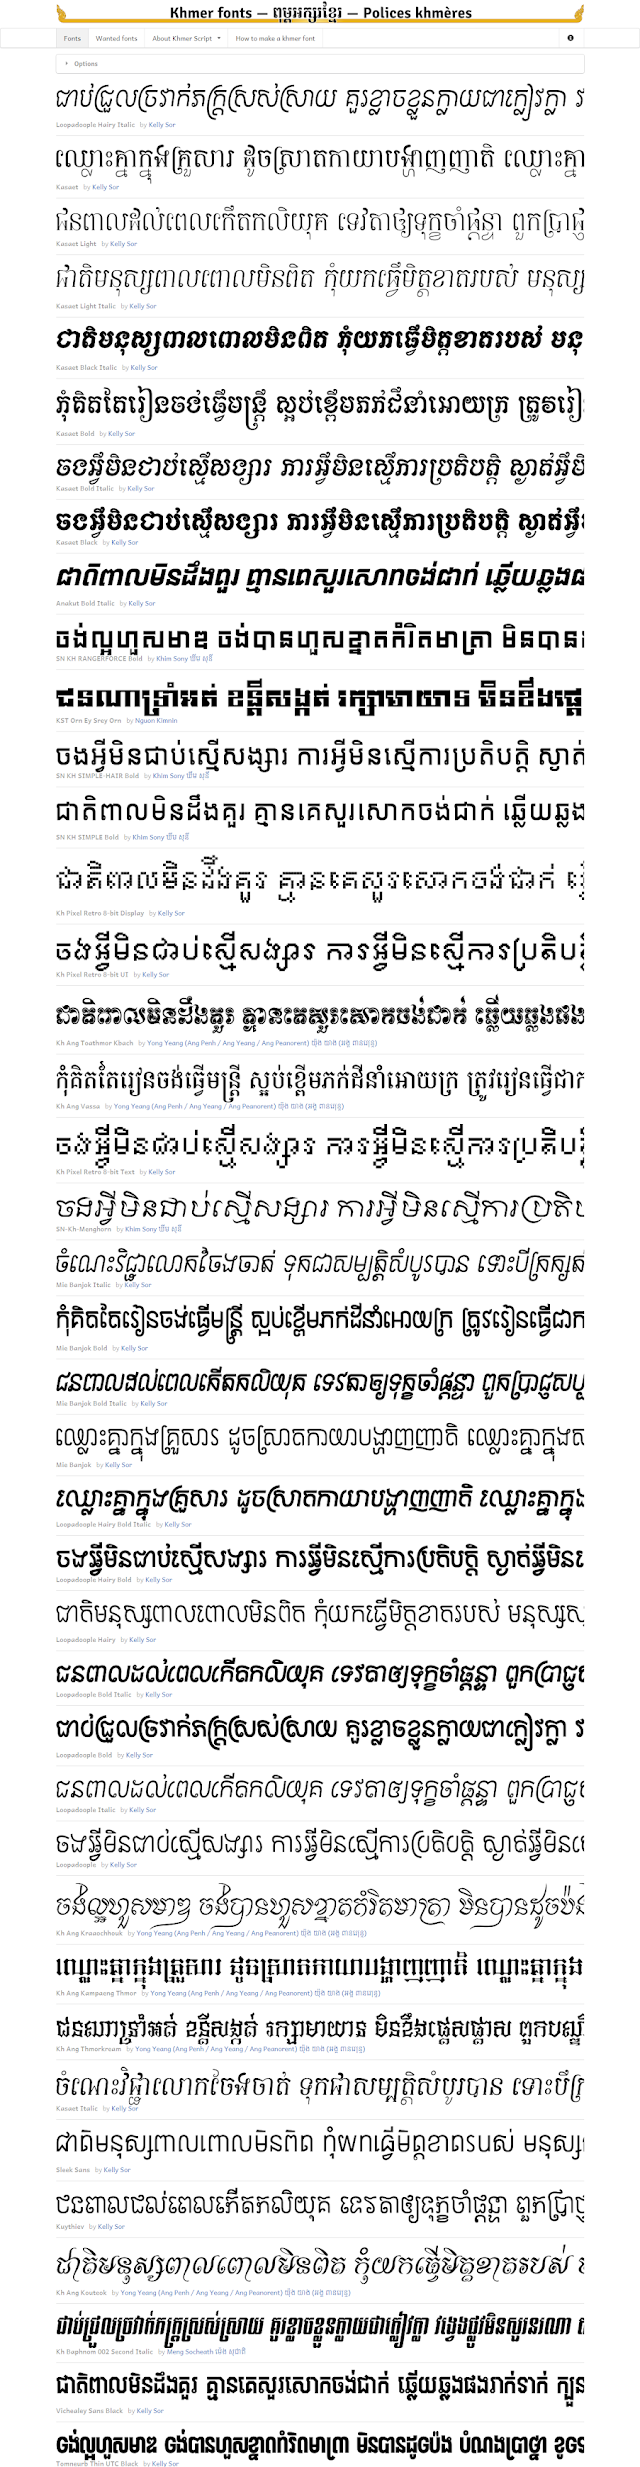 Where to download free and paid Khmer Unicode fonts?